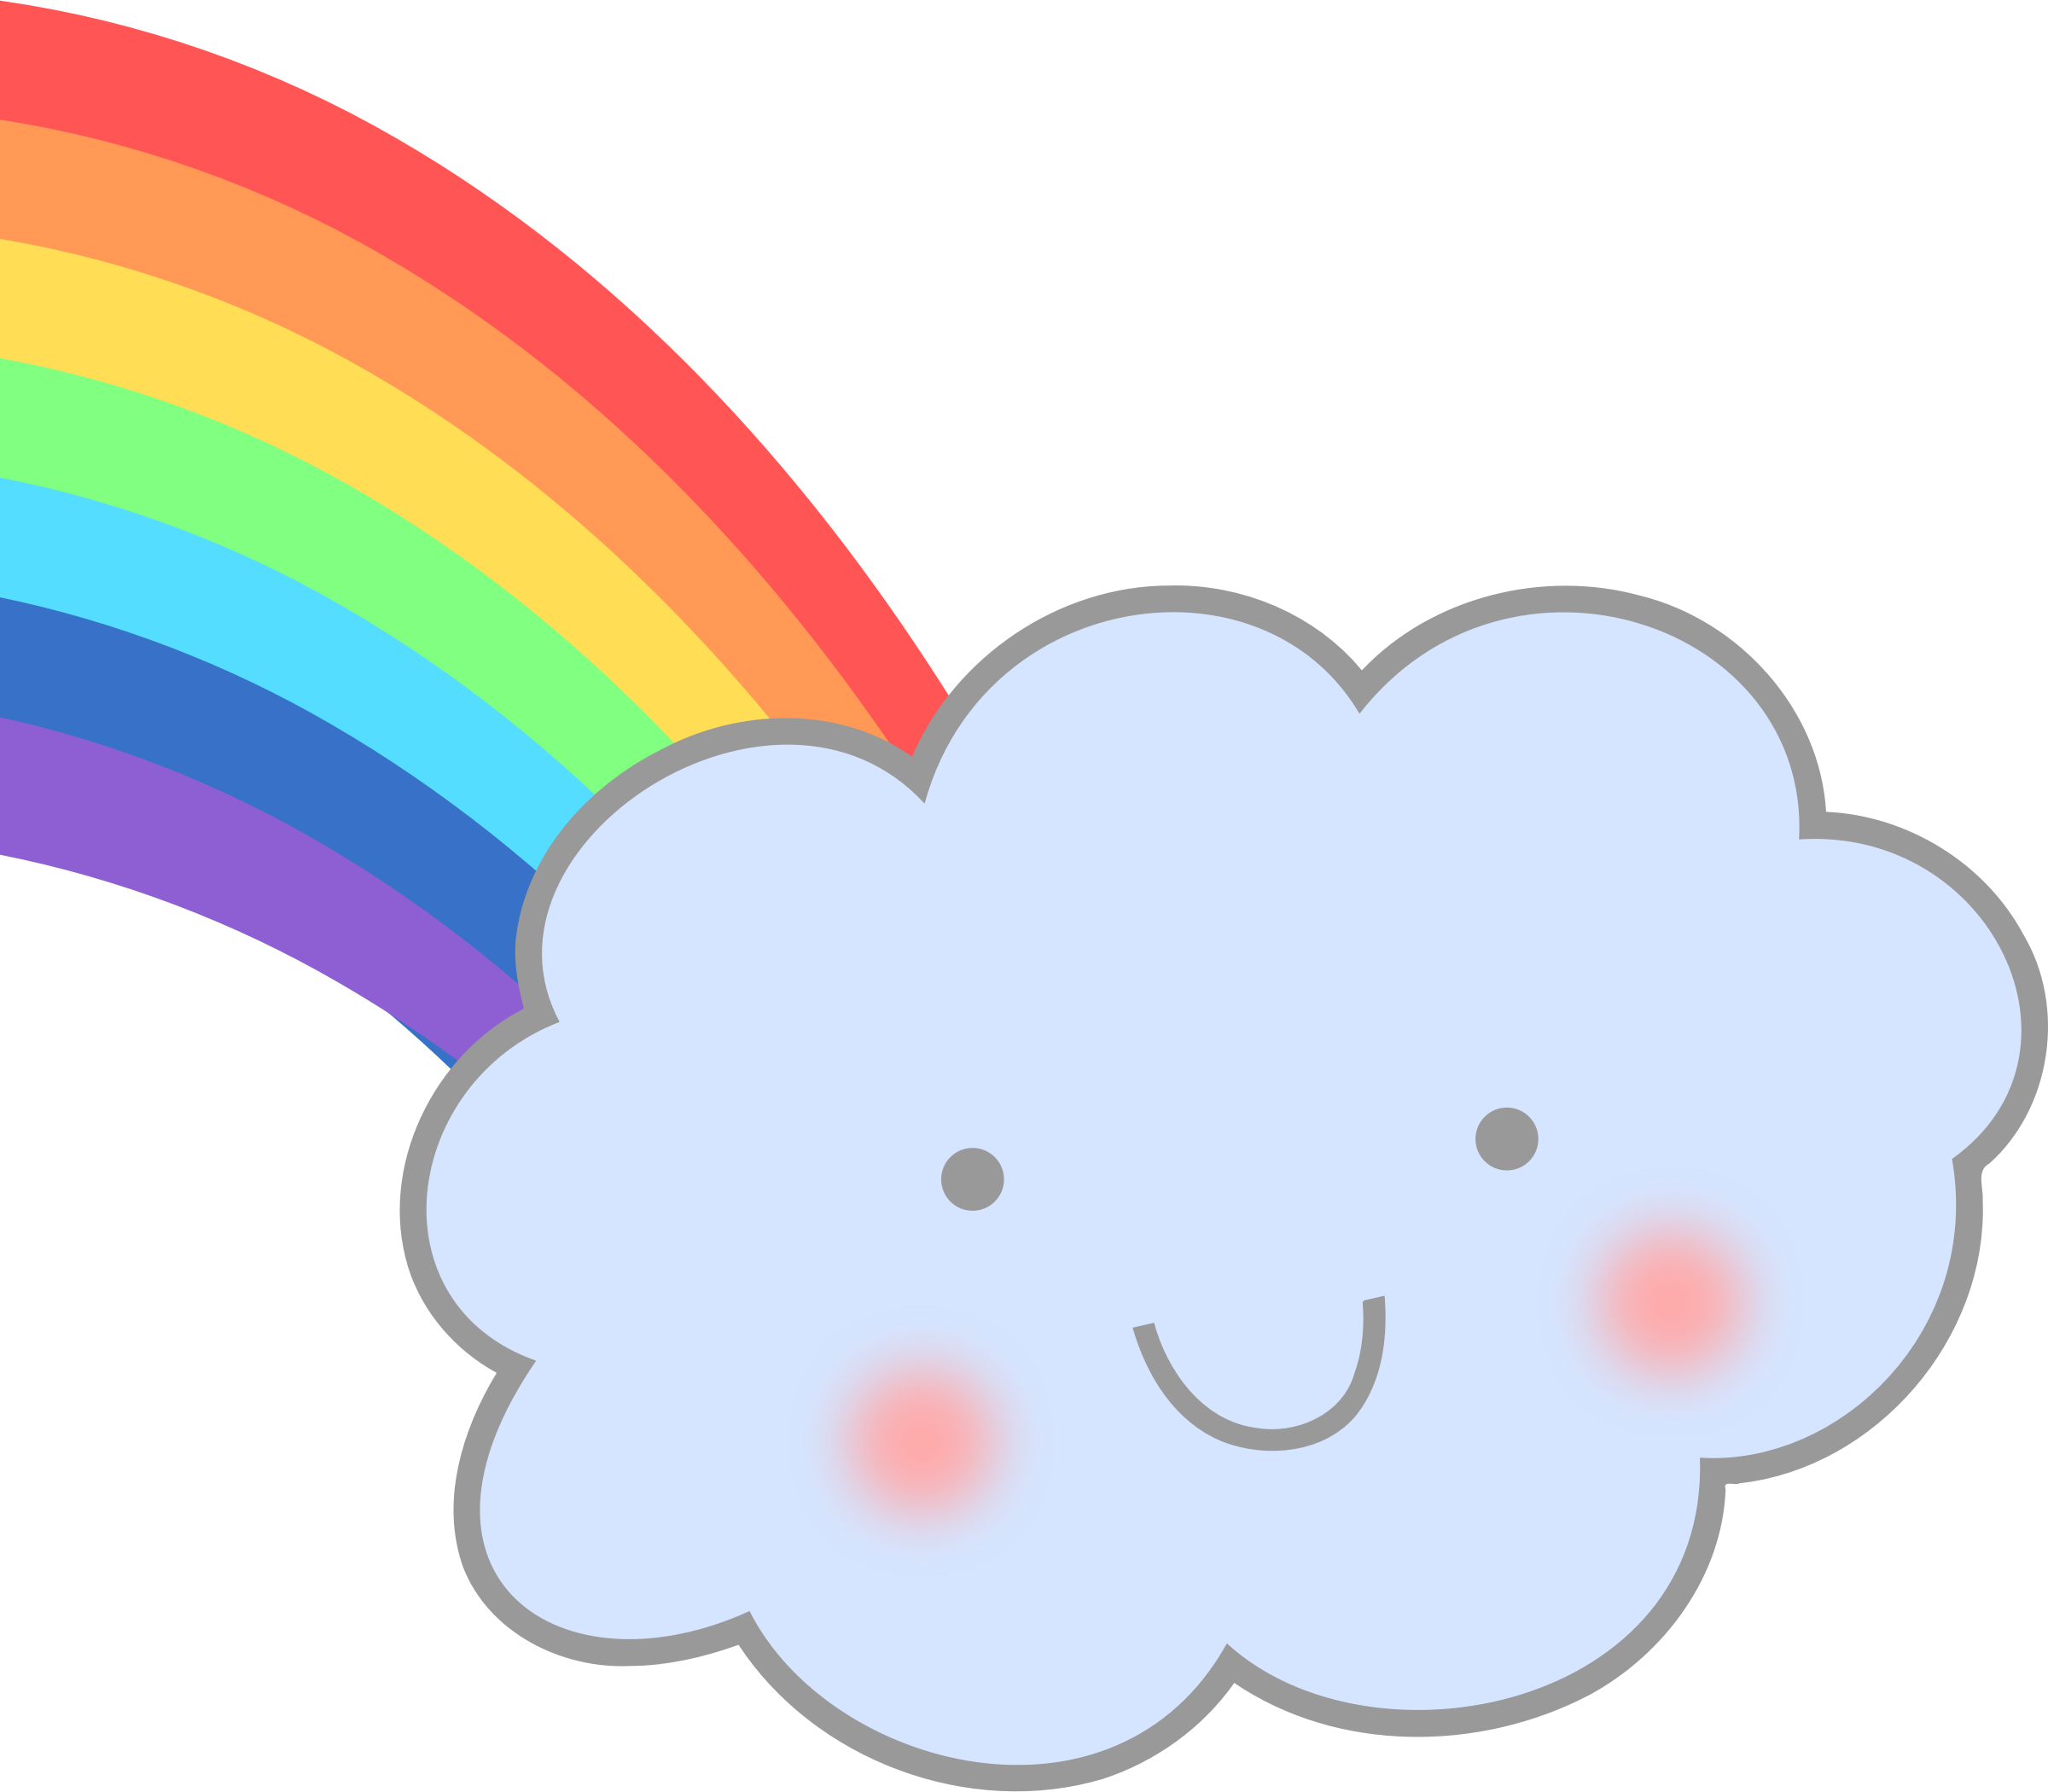 Hearts clipart cloud. Https openclipart org image